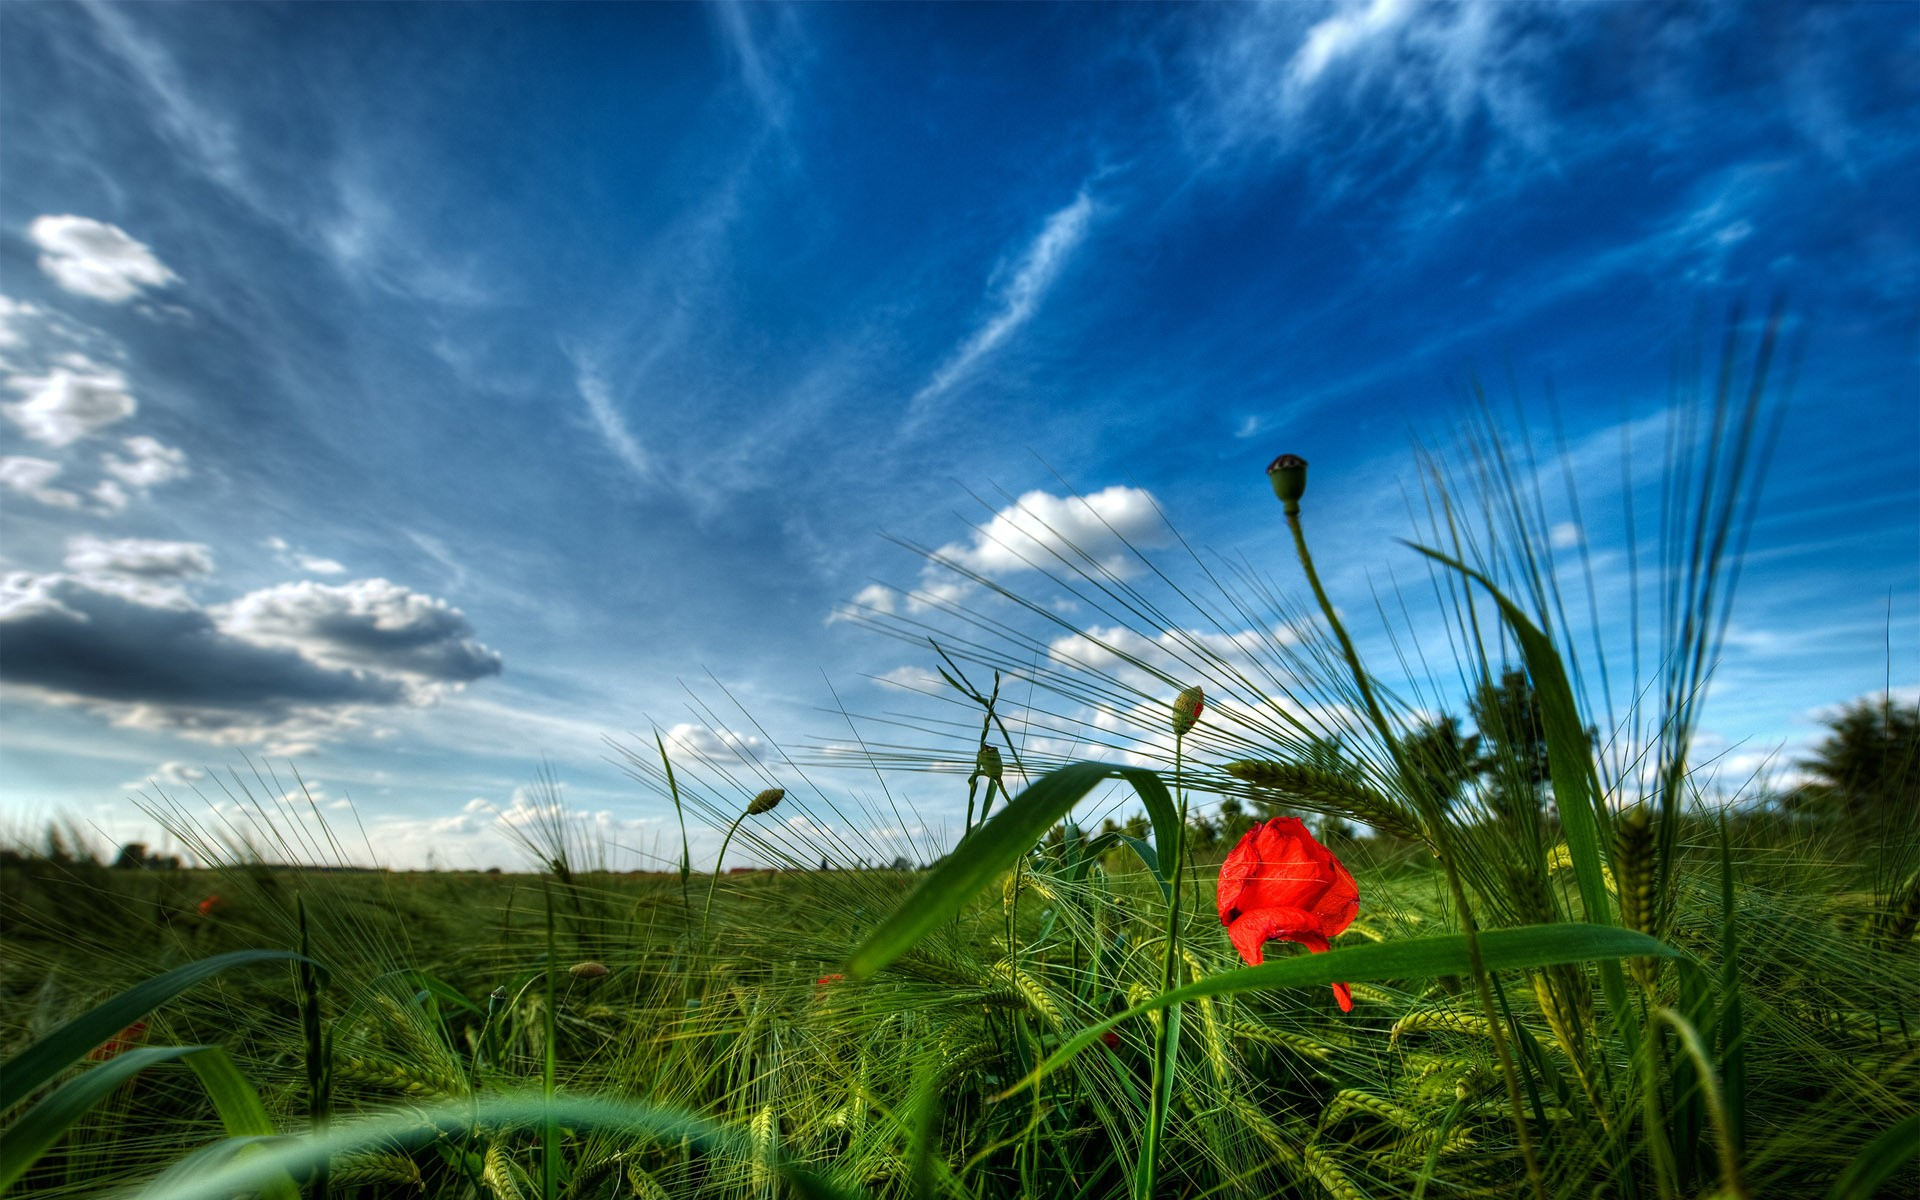 wallpaper, fields, poppy, pictures, daily, sites